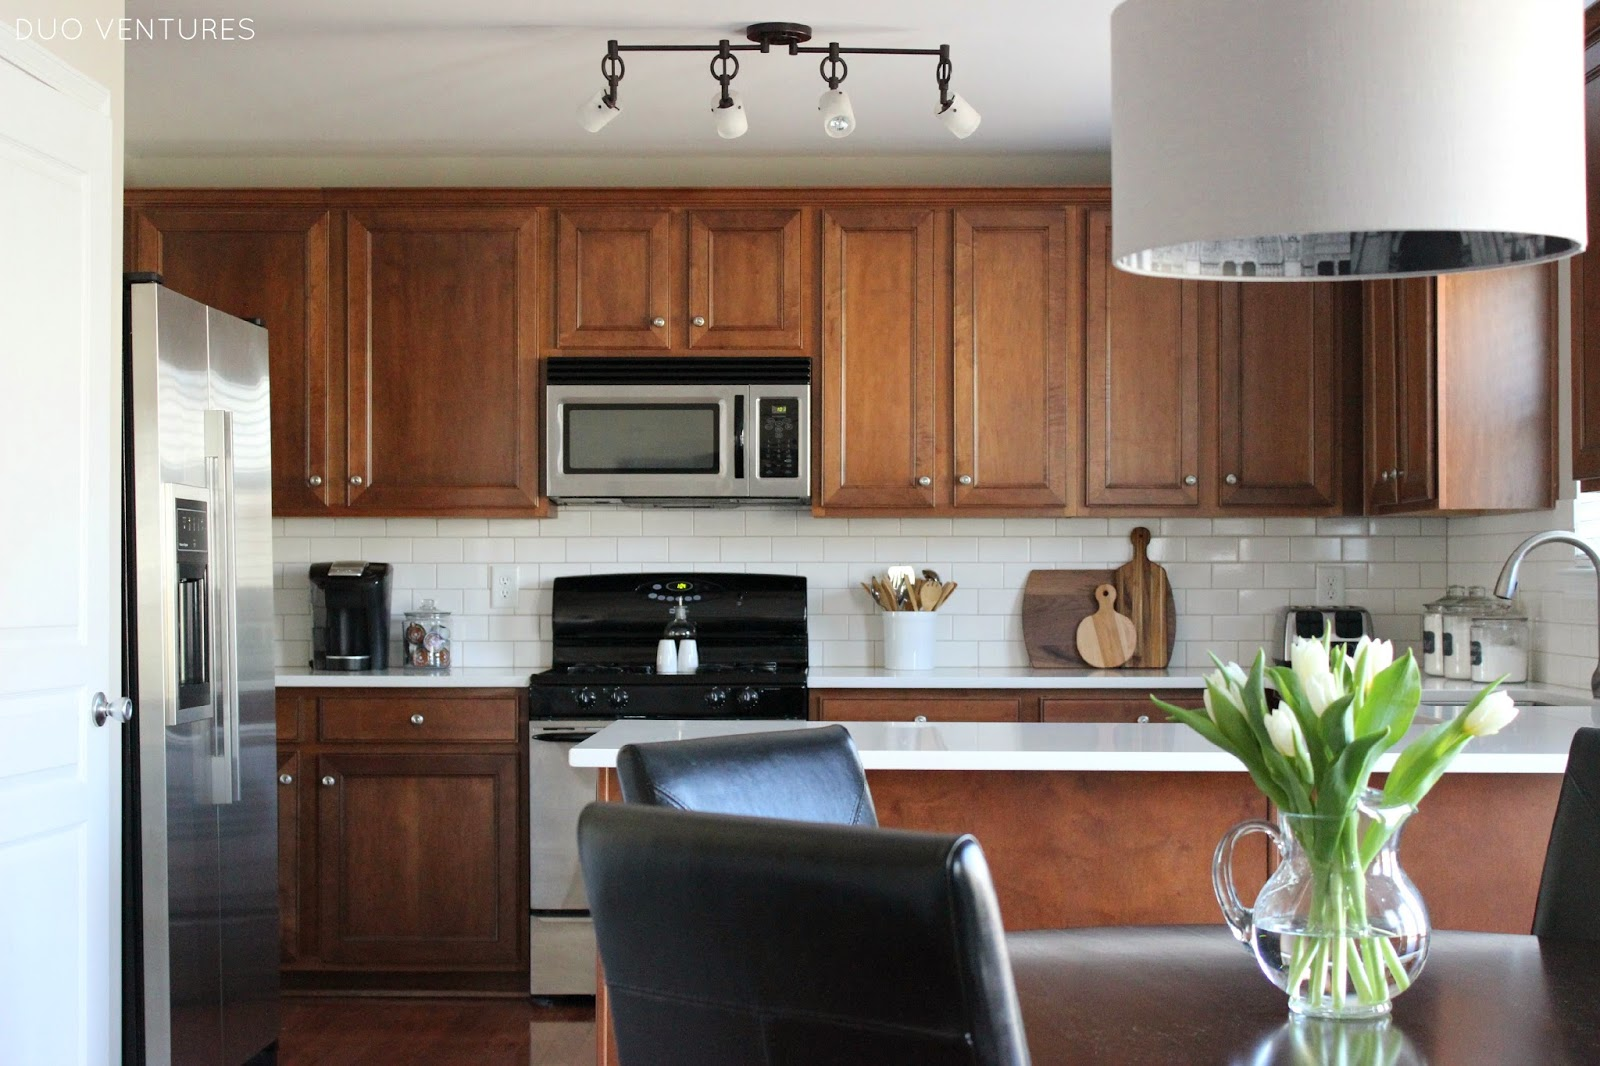 duo ventures: kitchen makeover: final reveal!